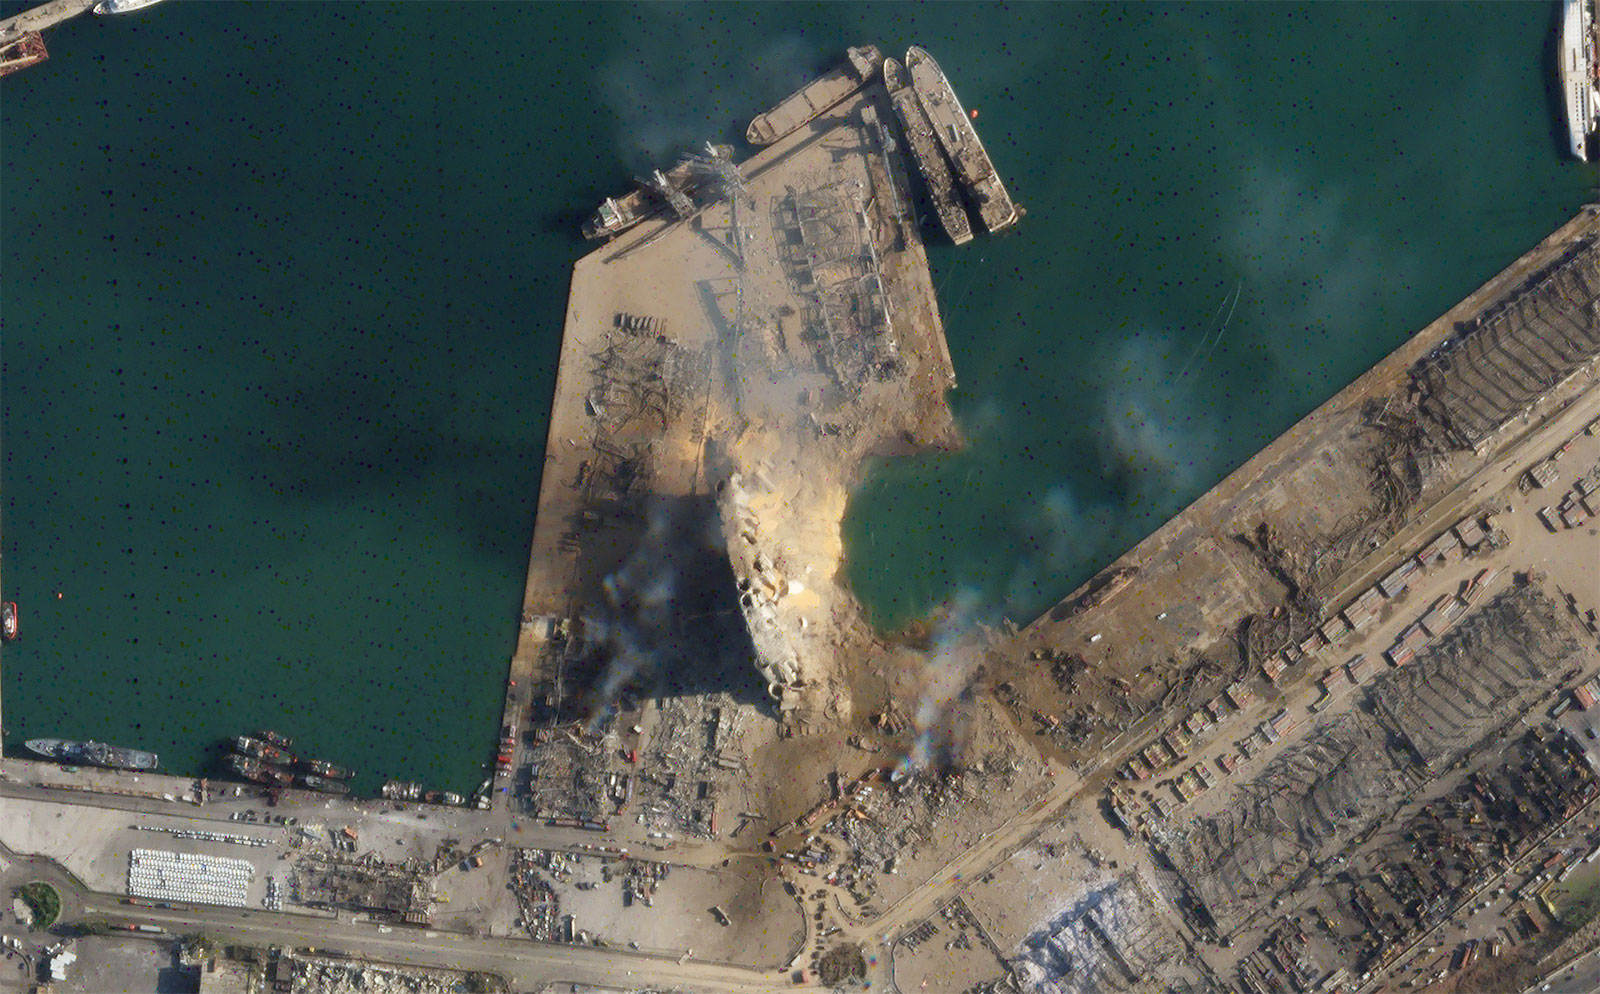 This satellite image, obtained by CNN from Planet Labs Inc., shows a massive crater at the site ofTuesday's explosionin Beirut's port.